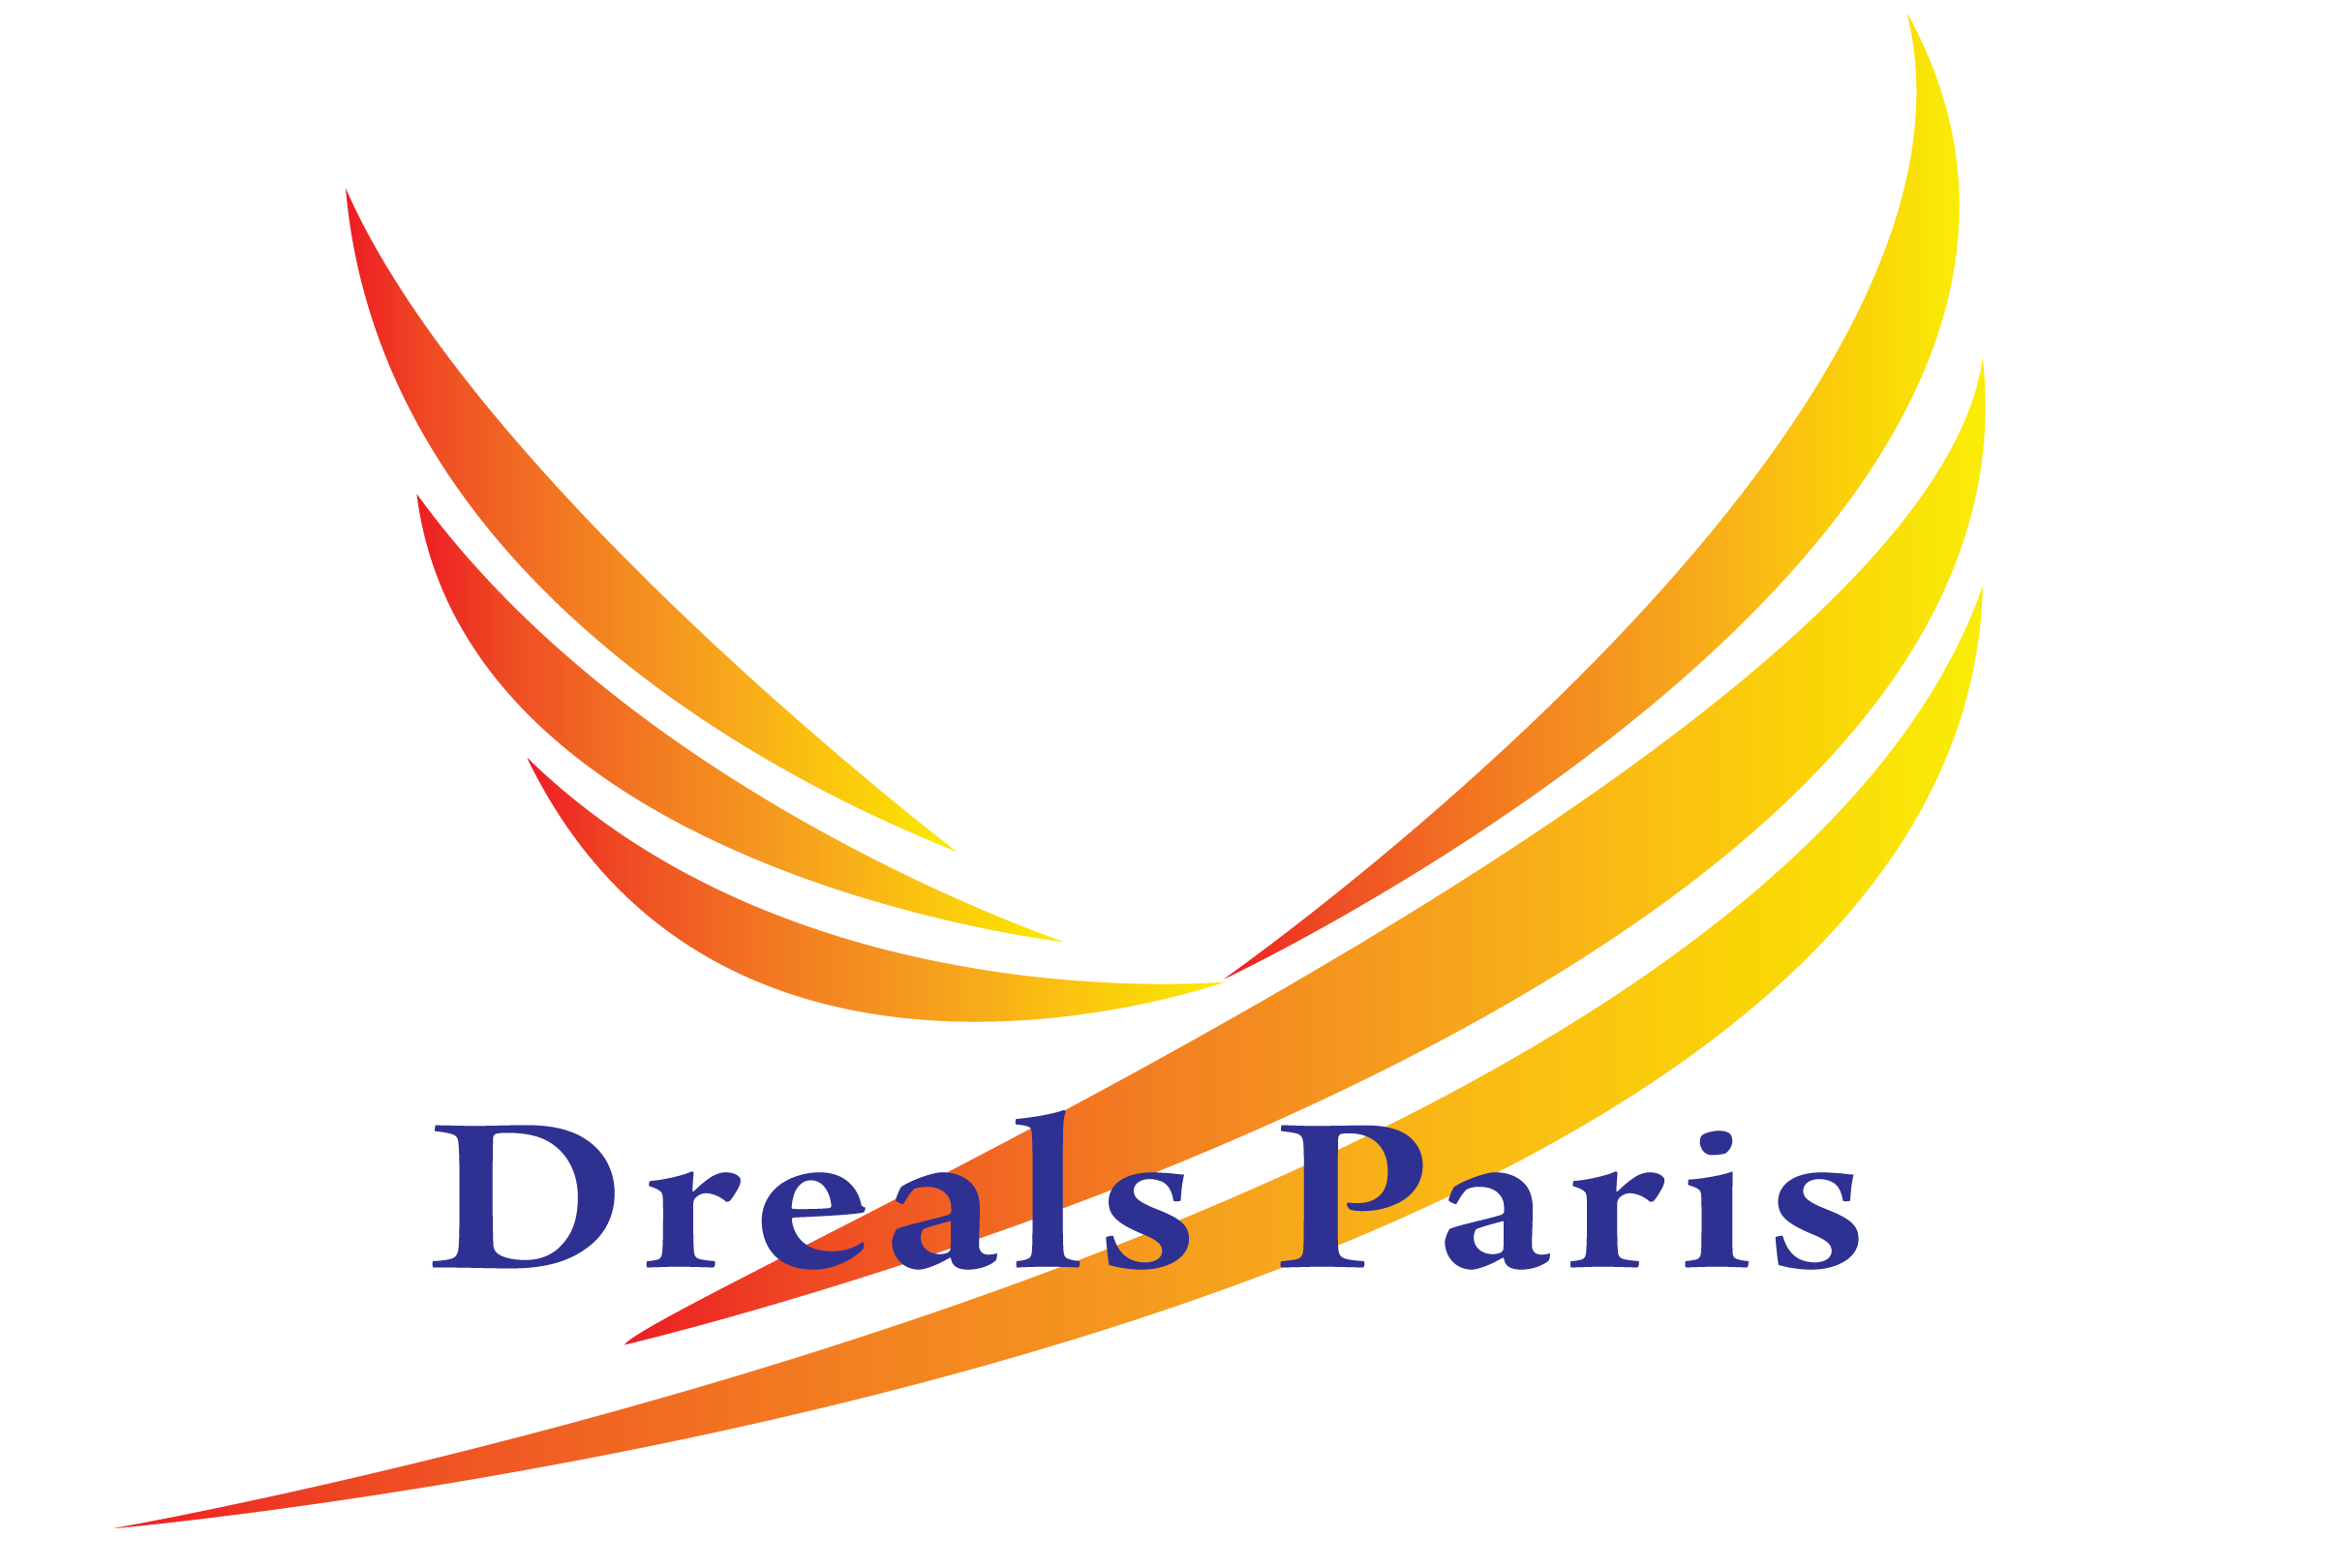 Dreals Paris